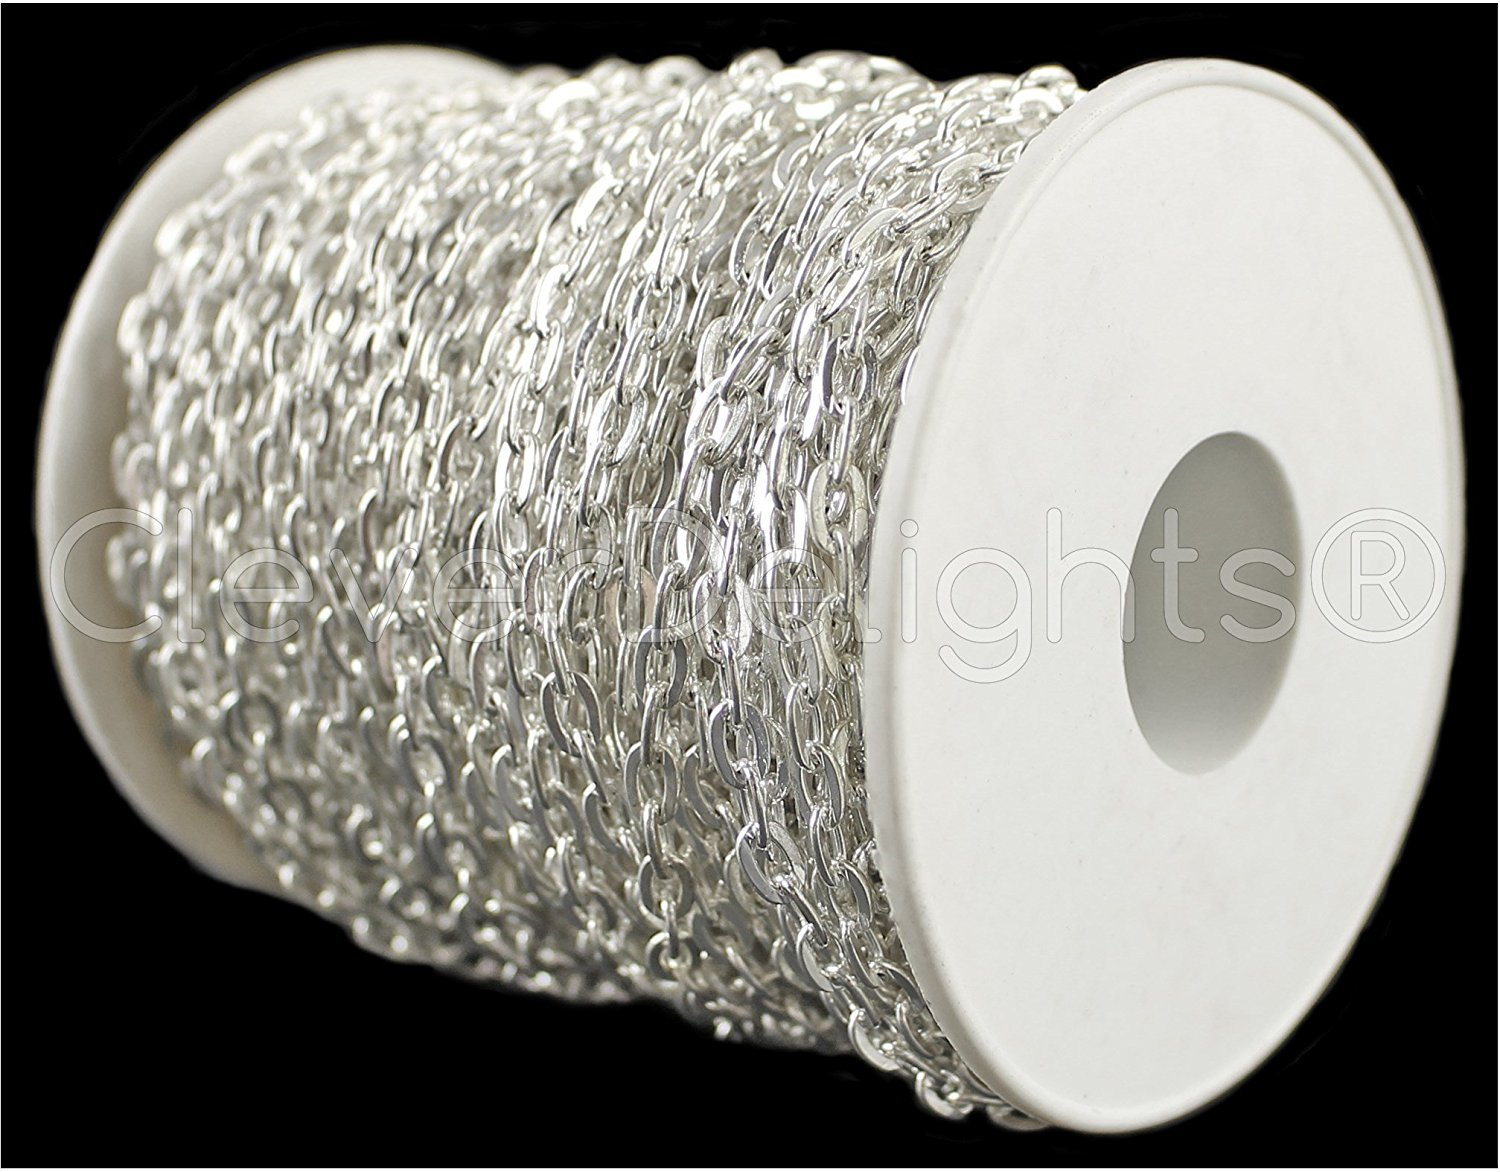 10 Yd Rolo Antique Silver Platinum 30 Feet Cable Chain Spool 4x6mm Link